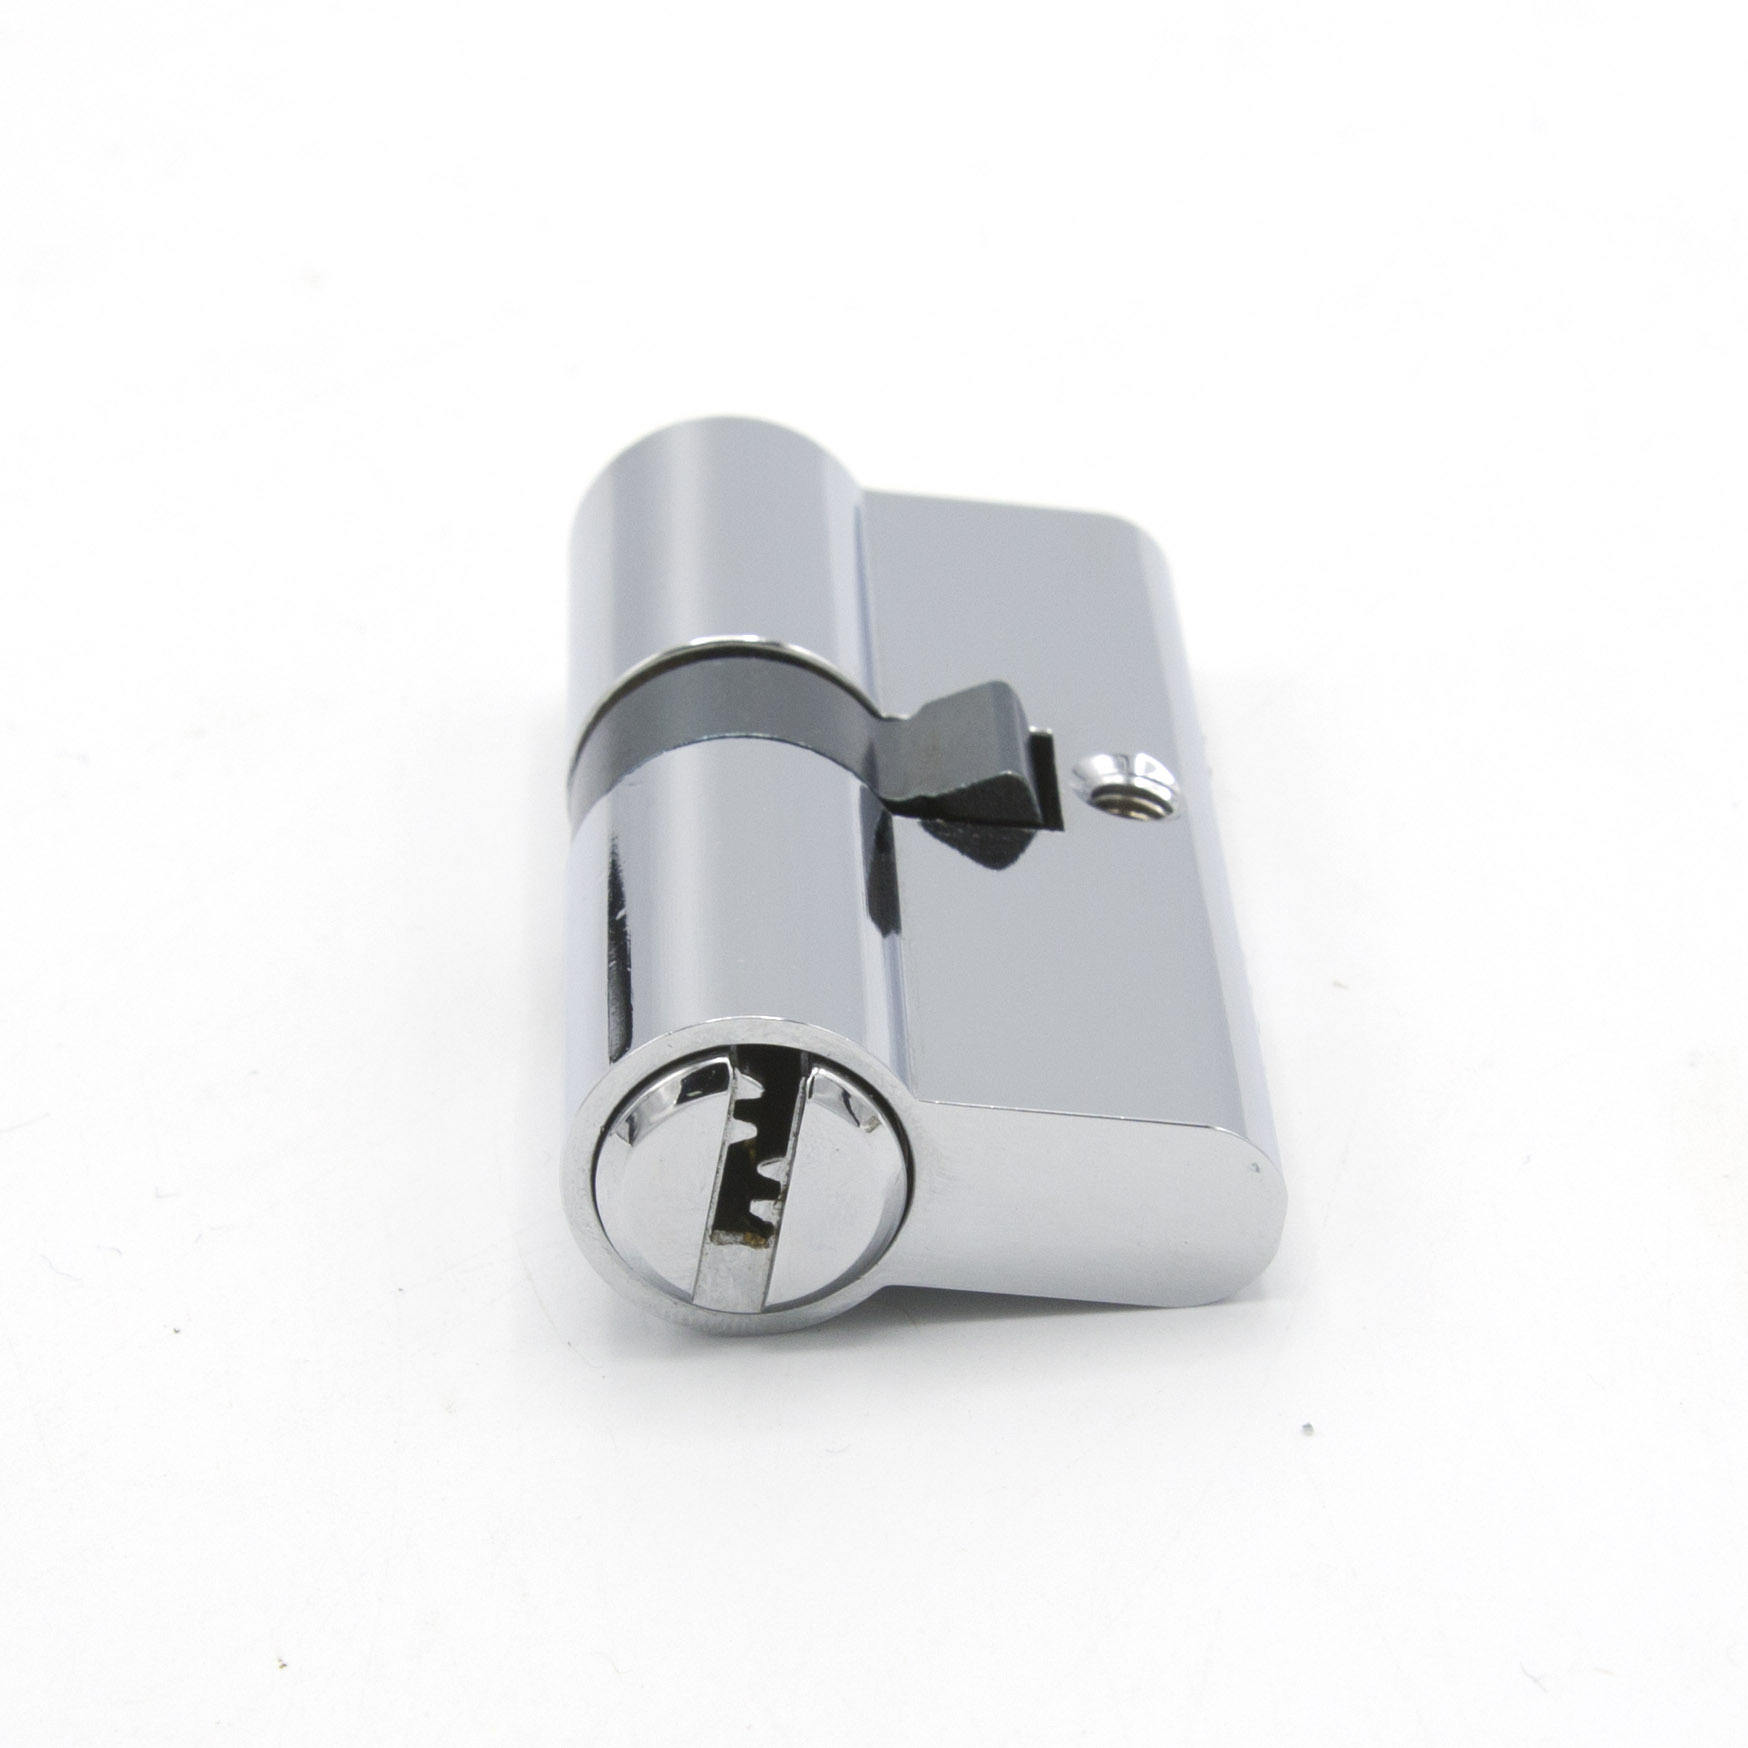 Cylinder Lock Brass Nickel Plated Euro Profile Key Cylinder Locks For Door